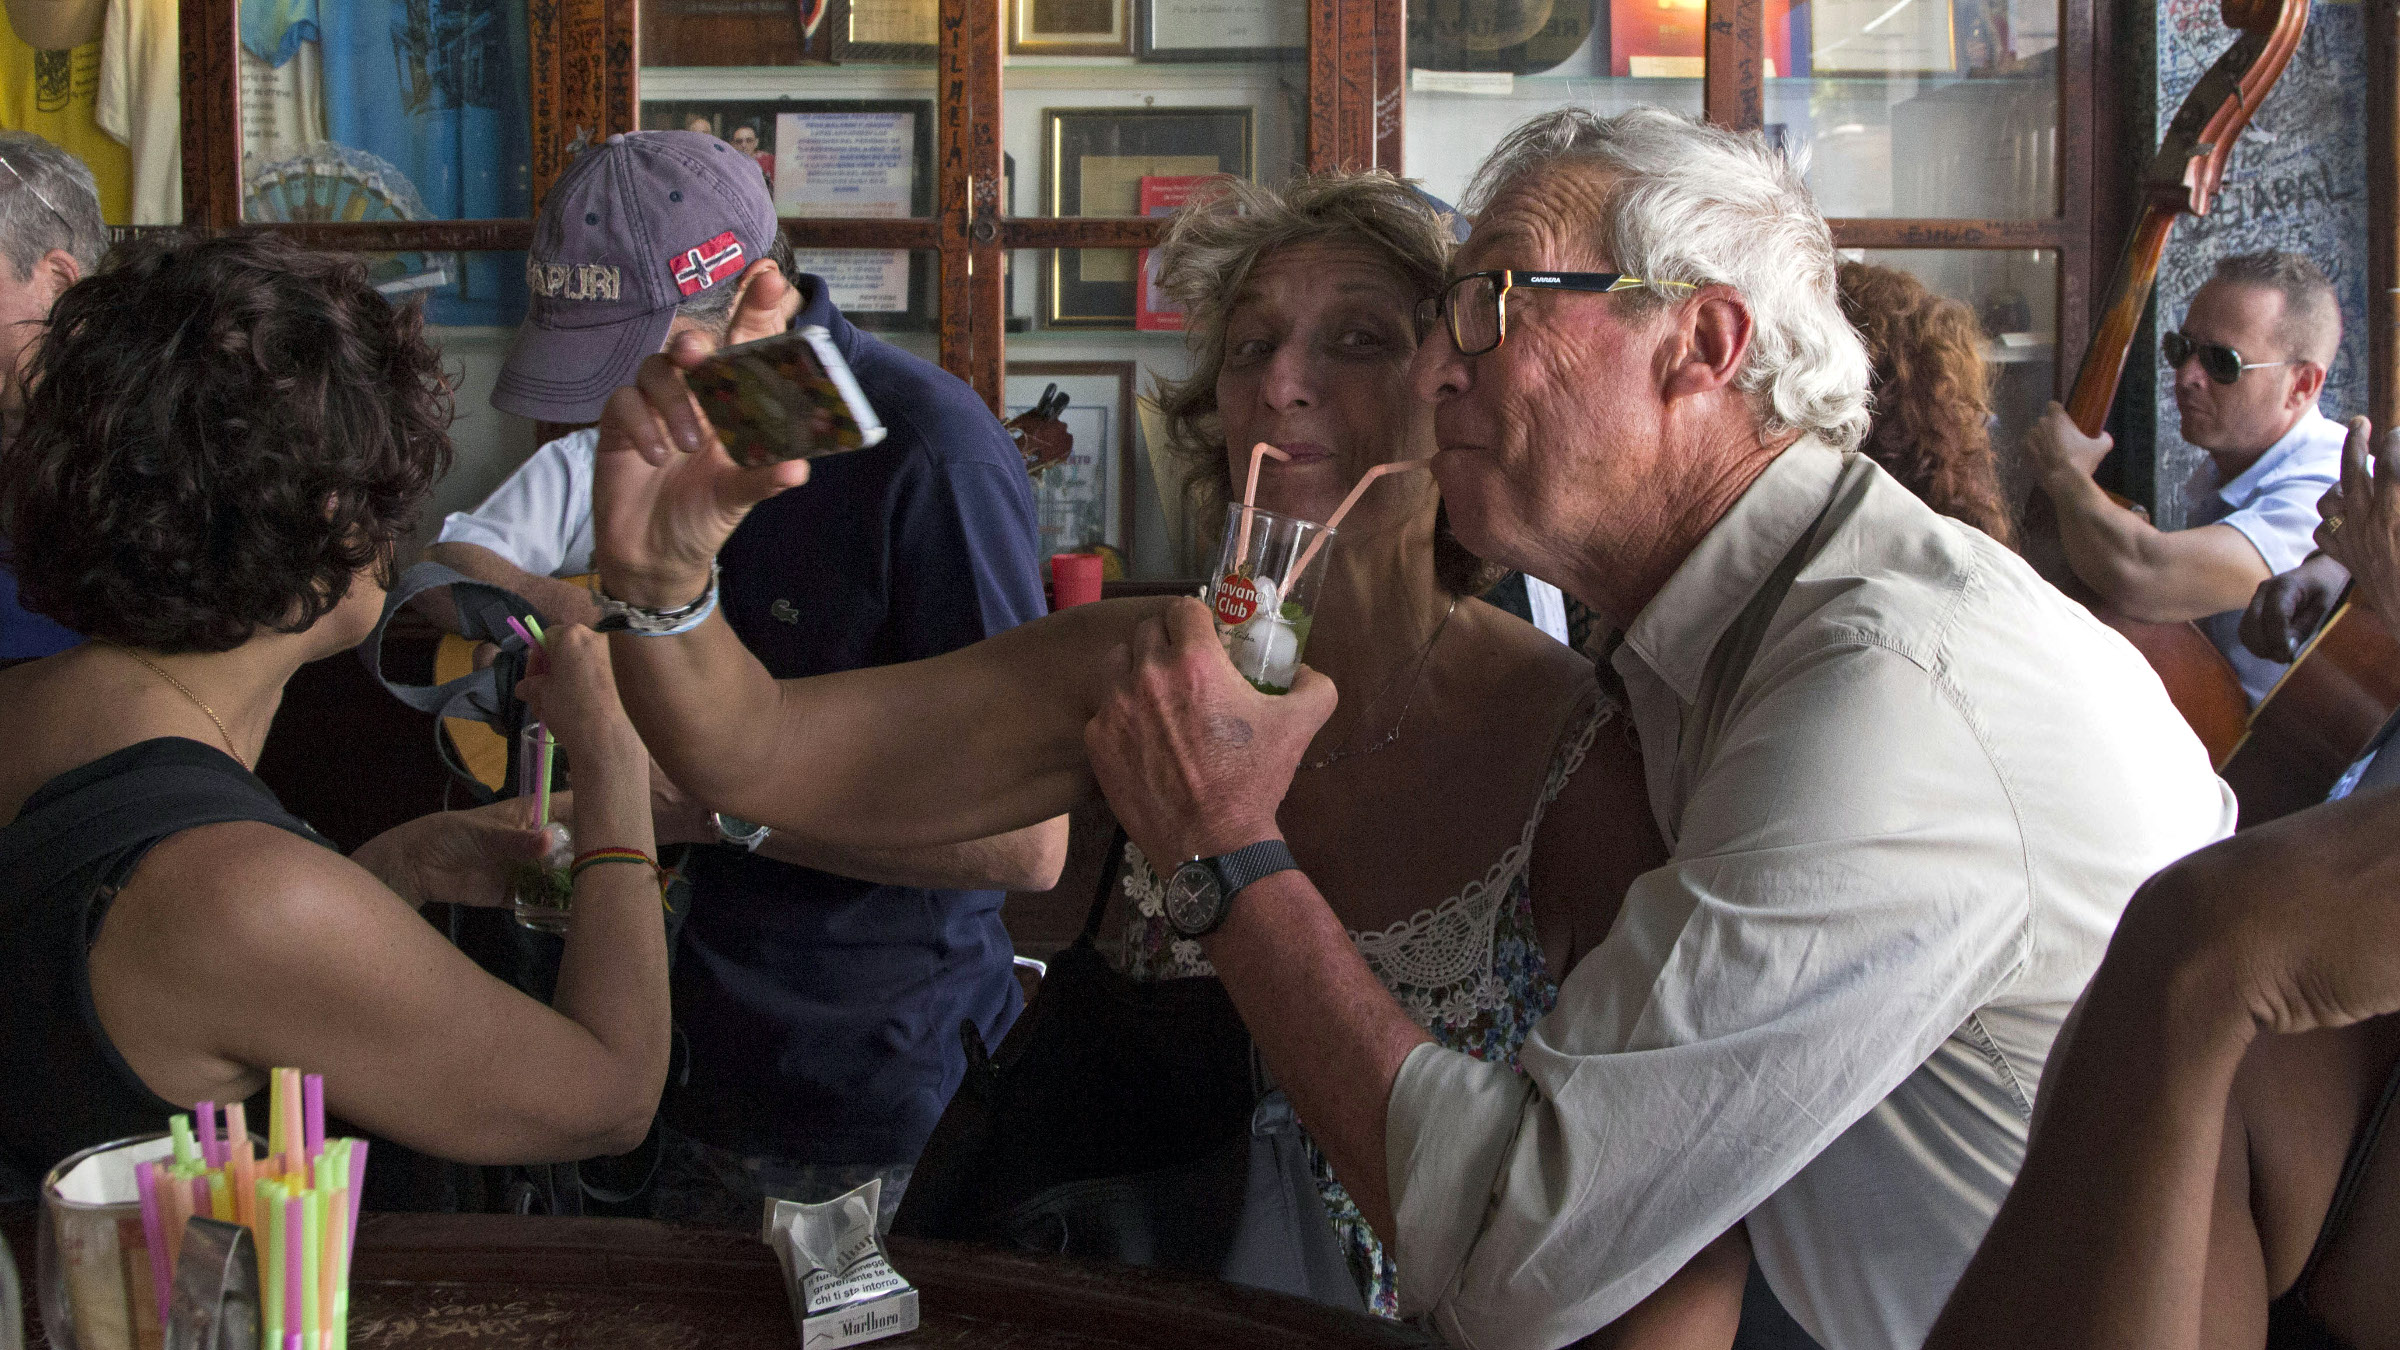 FILE - This Sunday, March 22, 2015 file photo shows tourists taking pictures of themselves as they drink a cocktail at the Bodeguita del Medio Bar frequented by the late American novelist Ernest Hemingway, in Old Havana, Cuba. Tourists trying to dine at high-end private restaurants are often struggling to find an empty table these days, and it's practically impossible to get a room at Havana's best hotels.